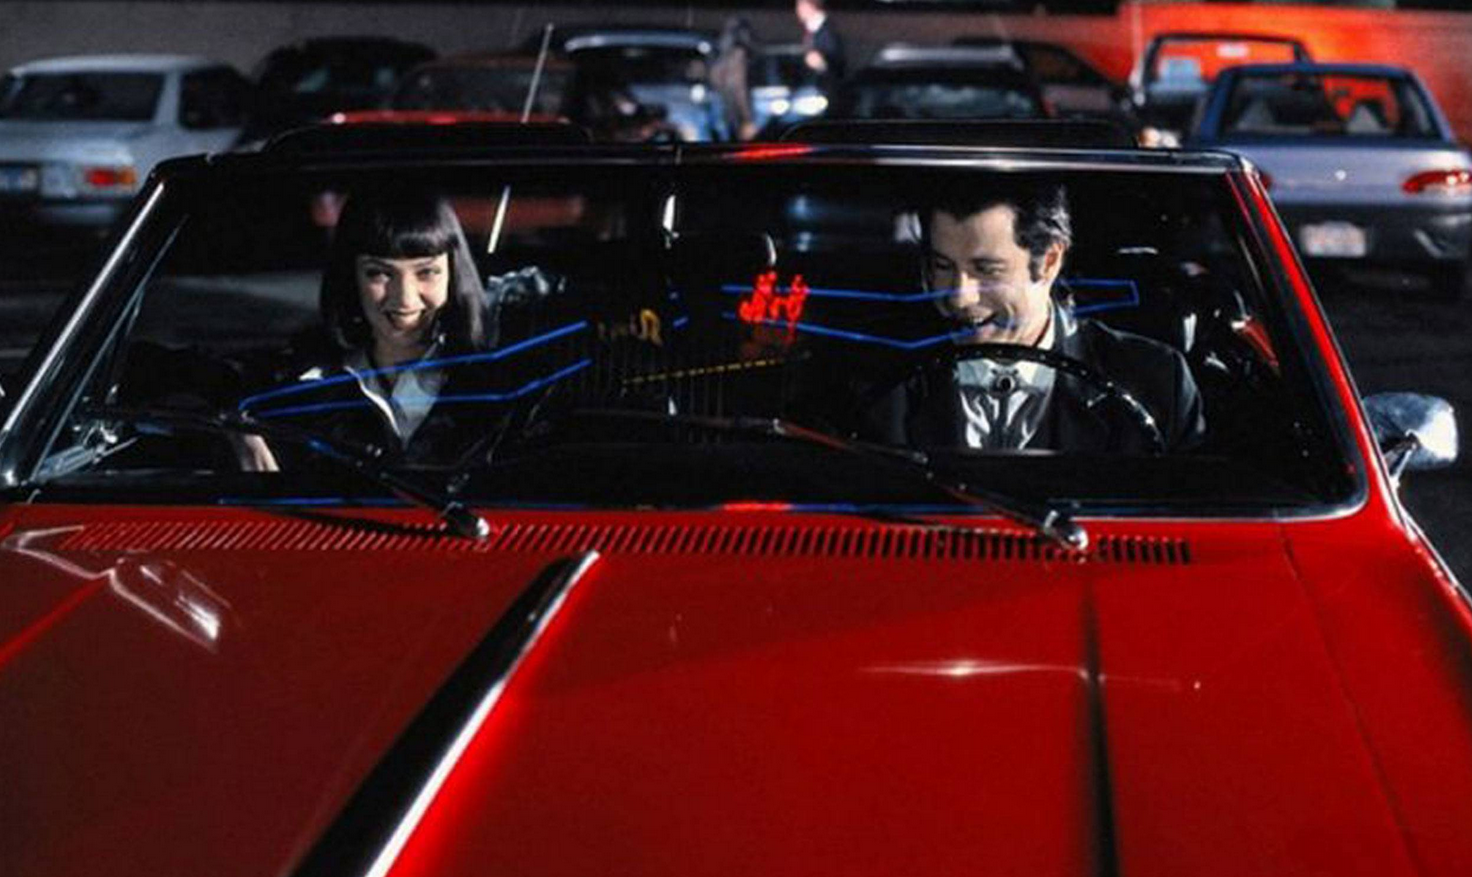 A still from the 1994 film Pulp Fiction with the Cherry red convertible which has been recovered nearly two decades after thieves stole it.